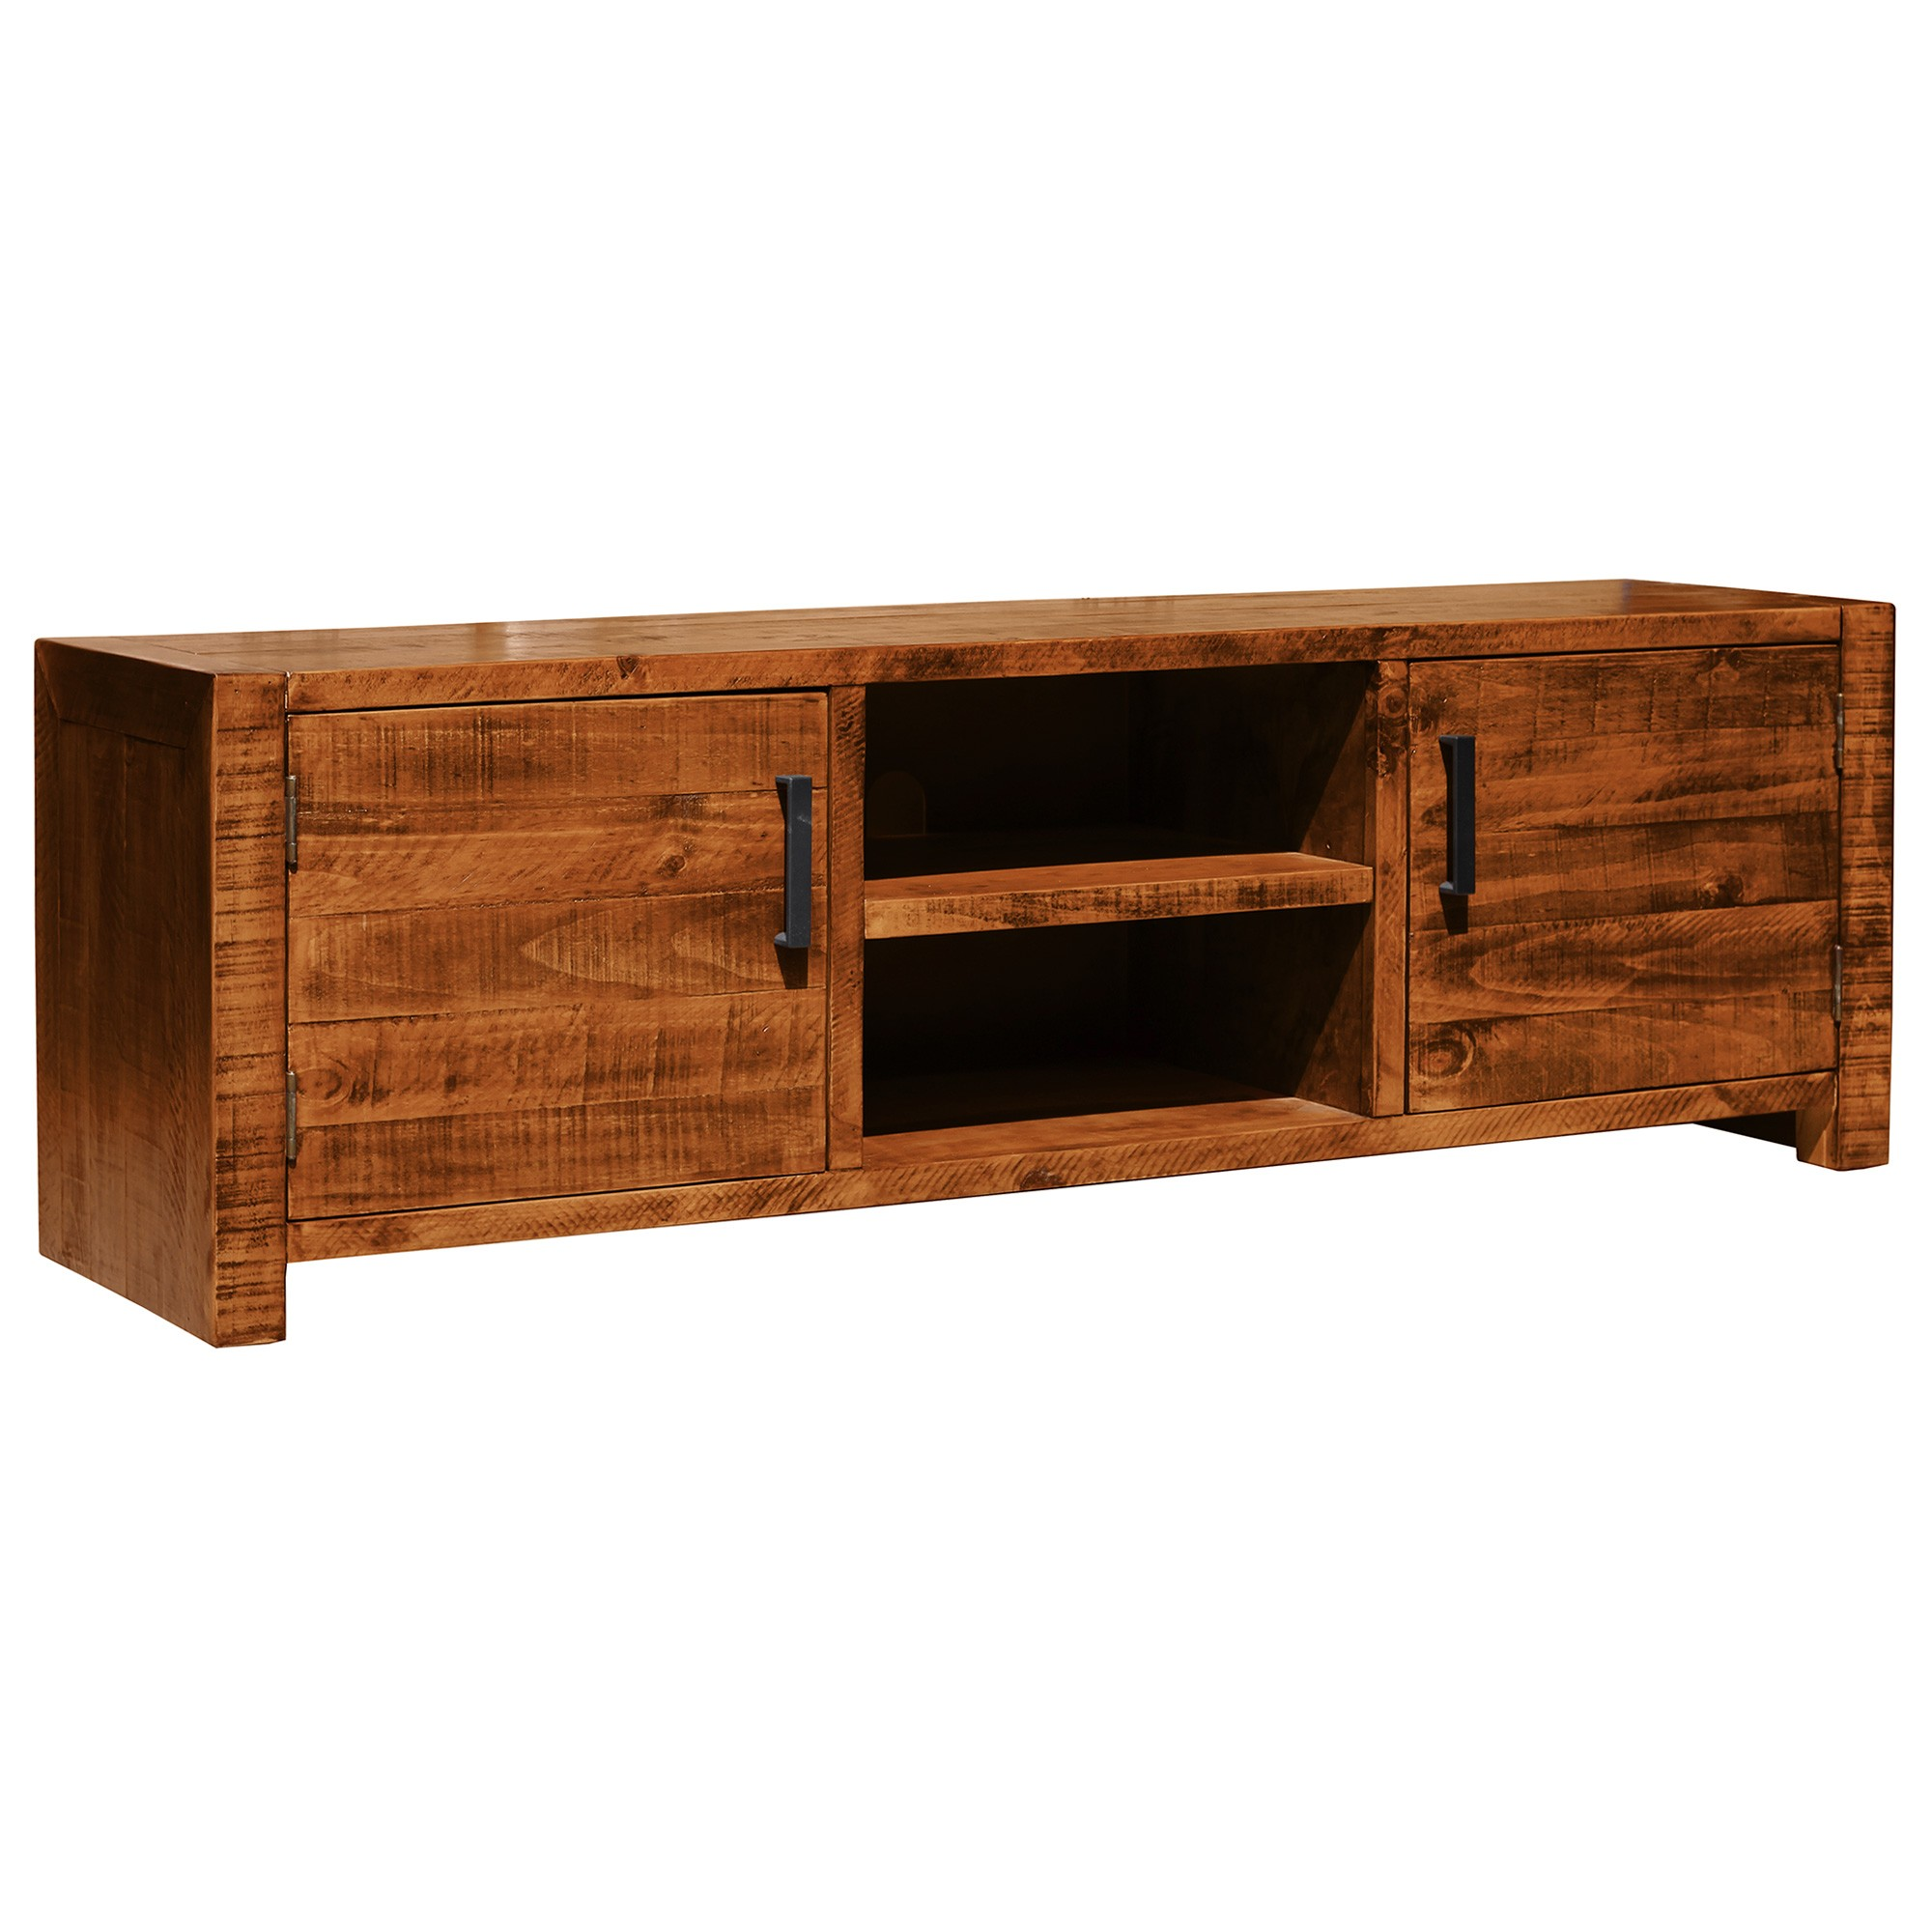 Arcadia Solid Timber 2 Door TV Unit, 160cm, Antique Barley